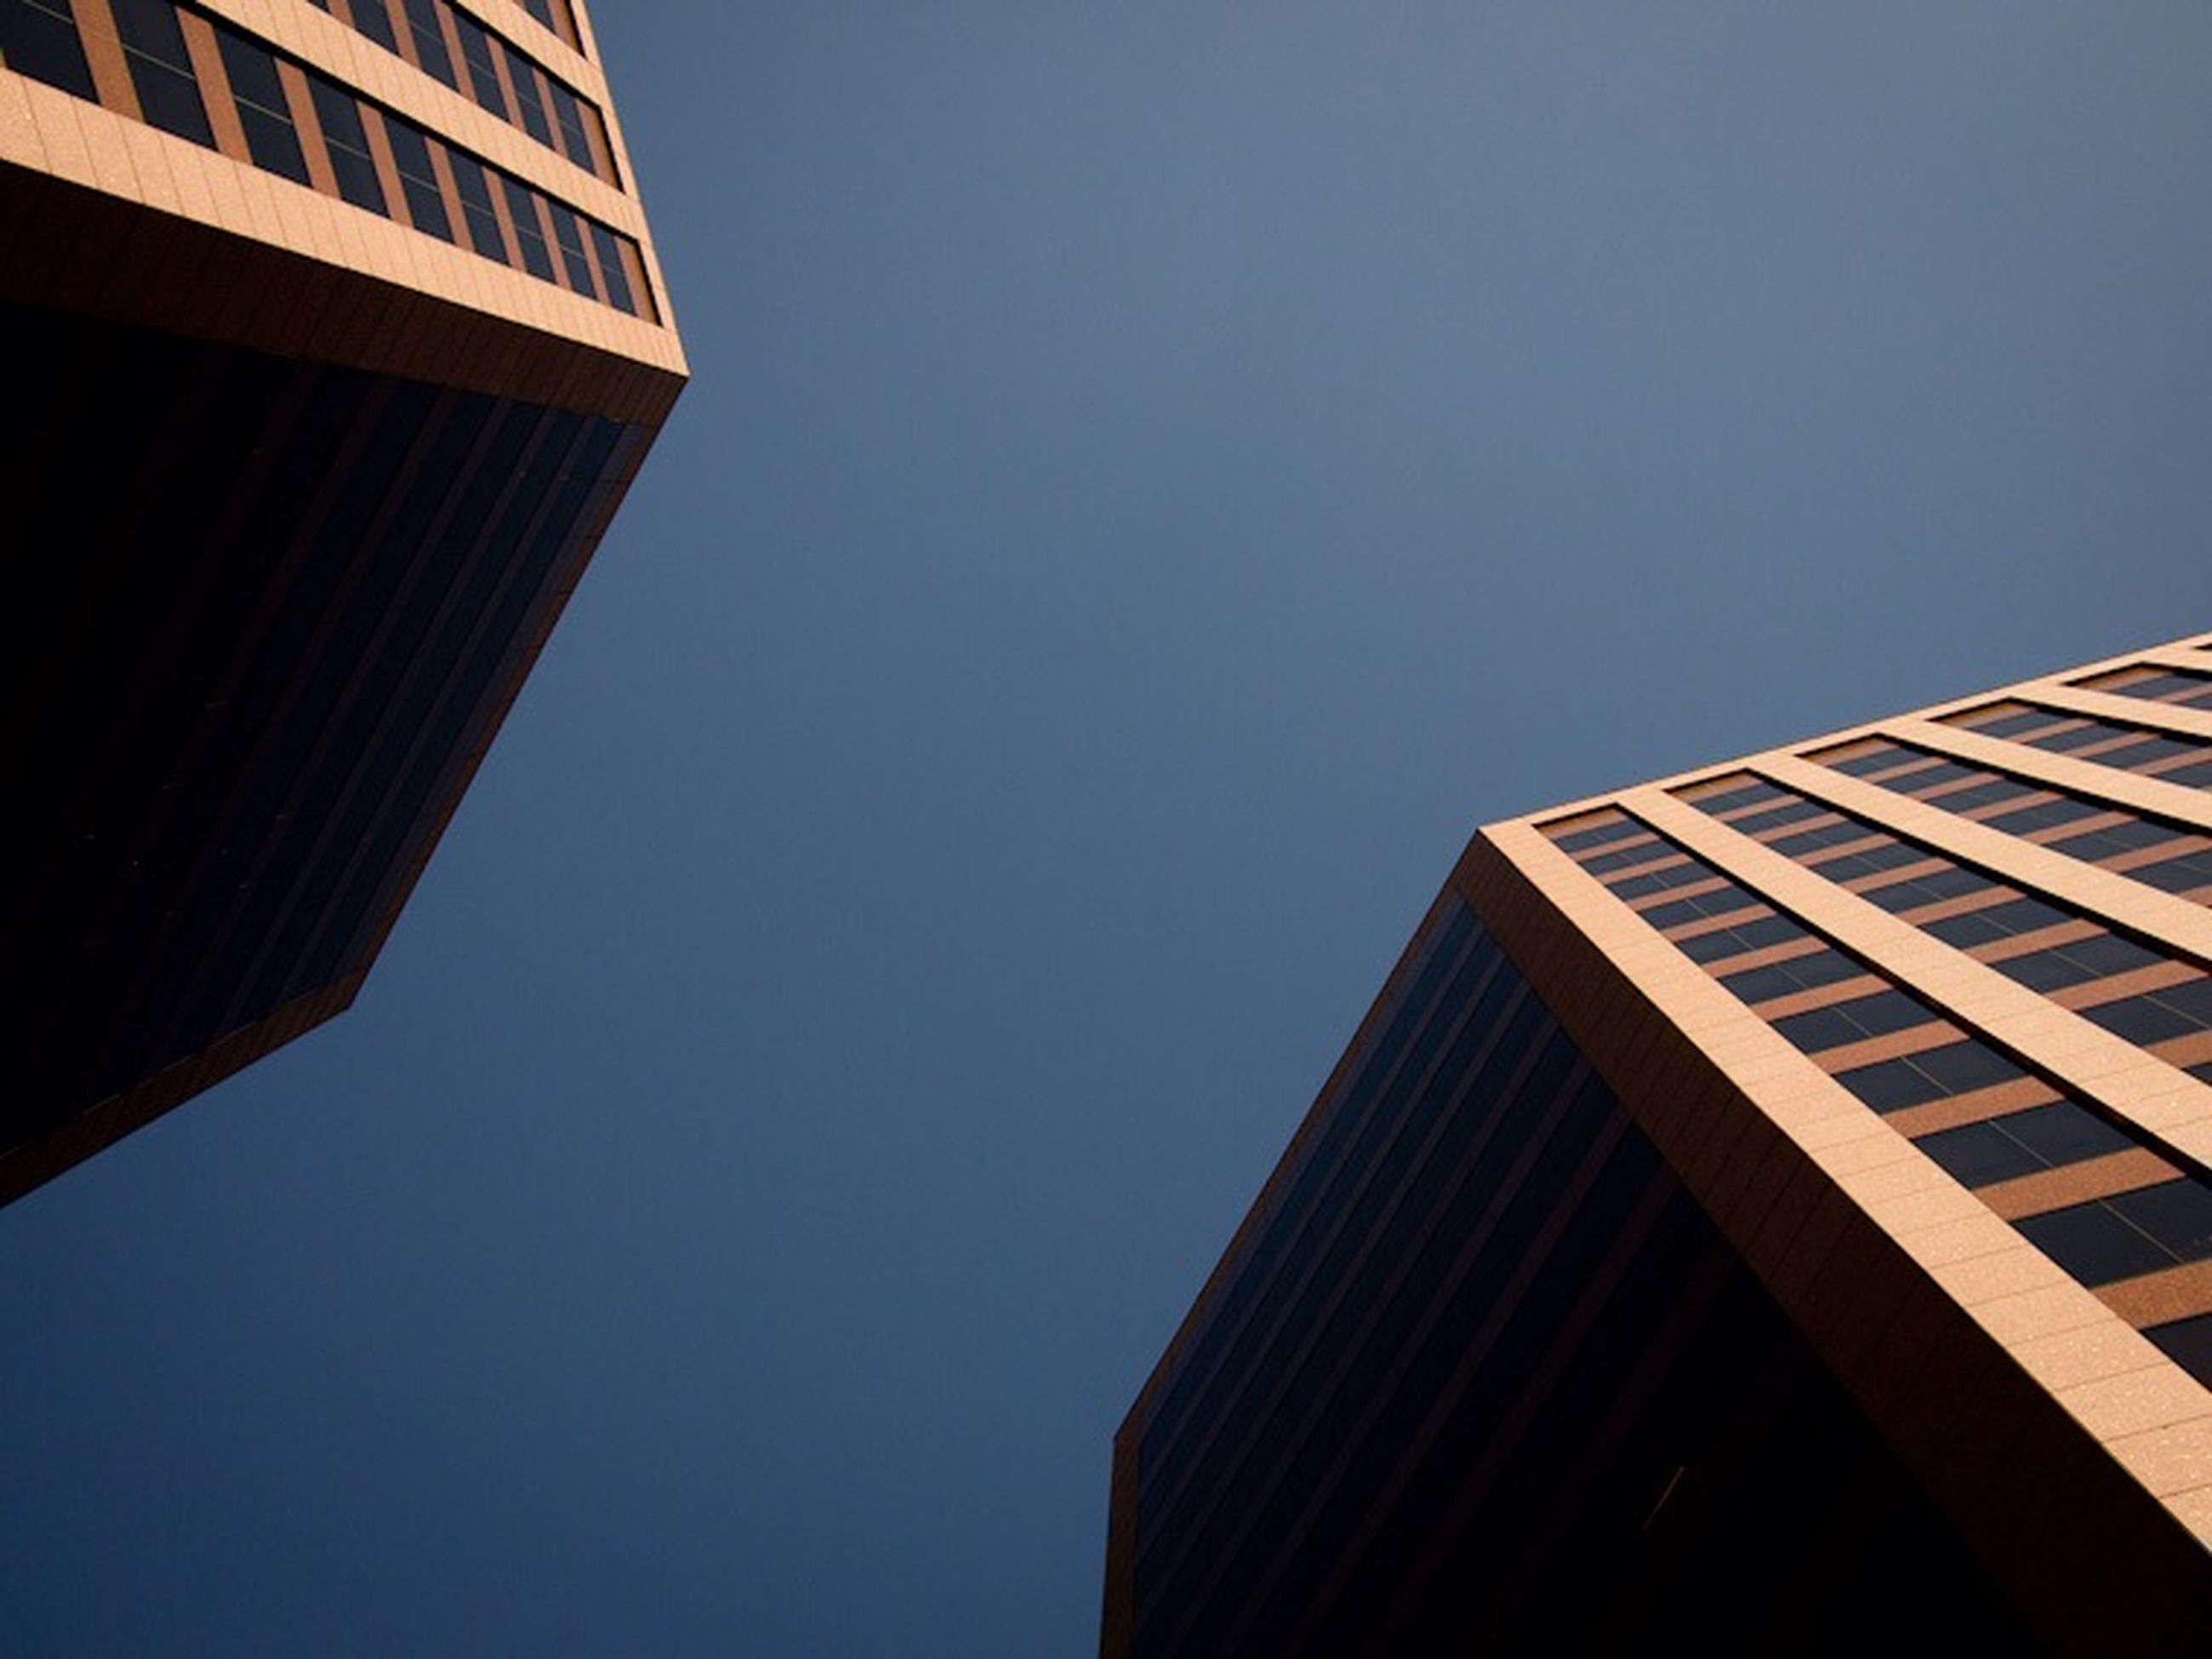 architecture, building exterior, built structure, low angle view, clear sky, city, modern, office building, building, copy space, tall - high, skyscraper, window, tower, sky, blue, outdoors, day, no people, residential building